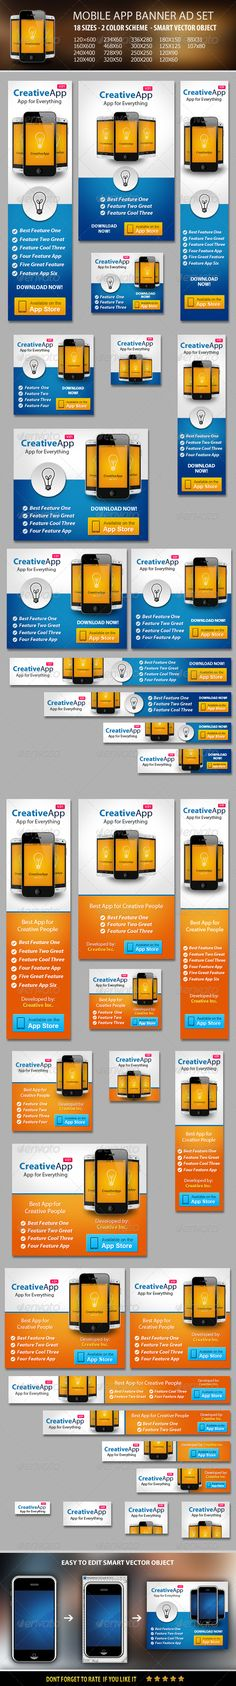 Mobile App Banner ad Set Template PSD | Buy and Download: http://graphicriver.net/item/mobile-app-banner-ad-set/5843731?WT.ac=category_thumb&WT.z_author=booharry&ref=ksioks